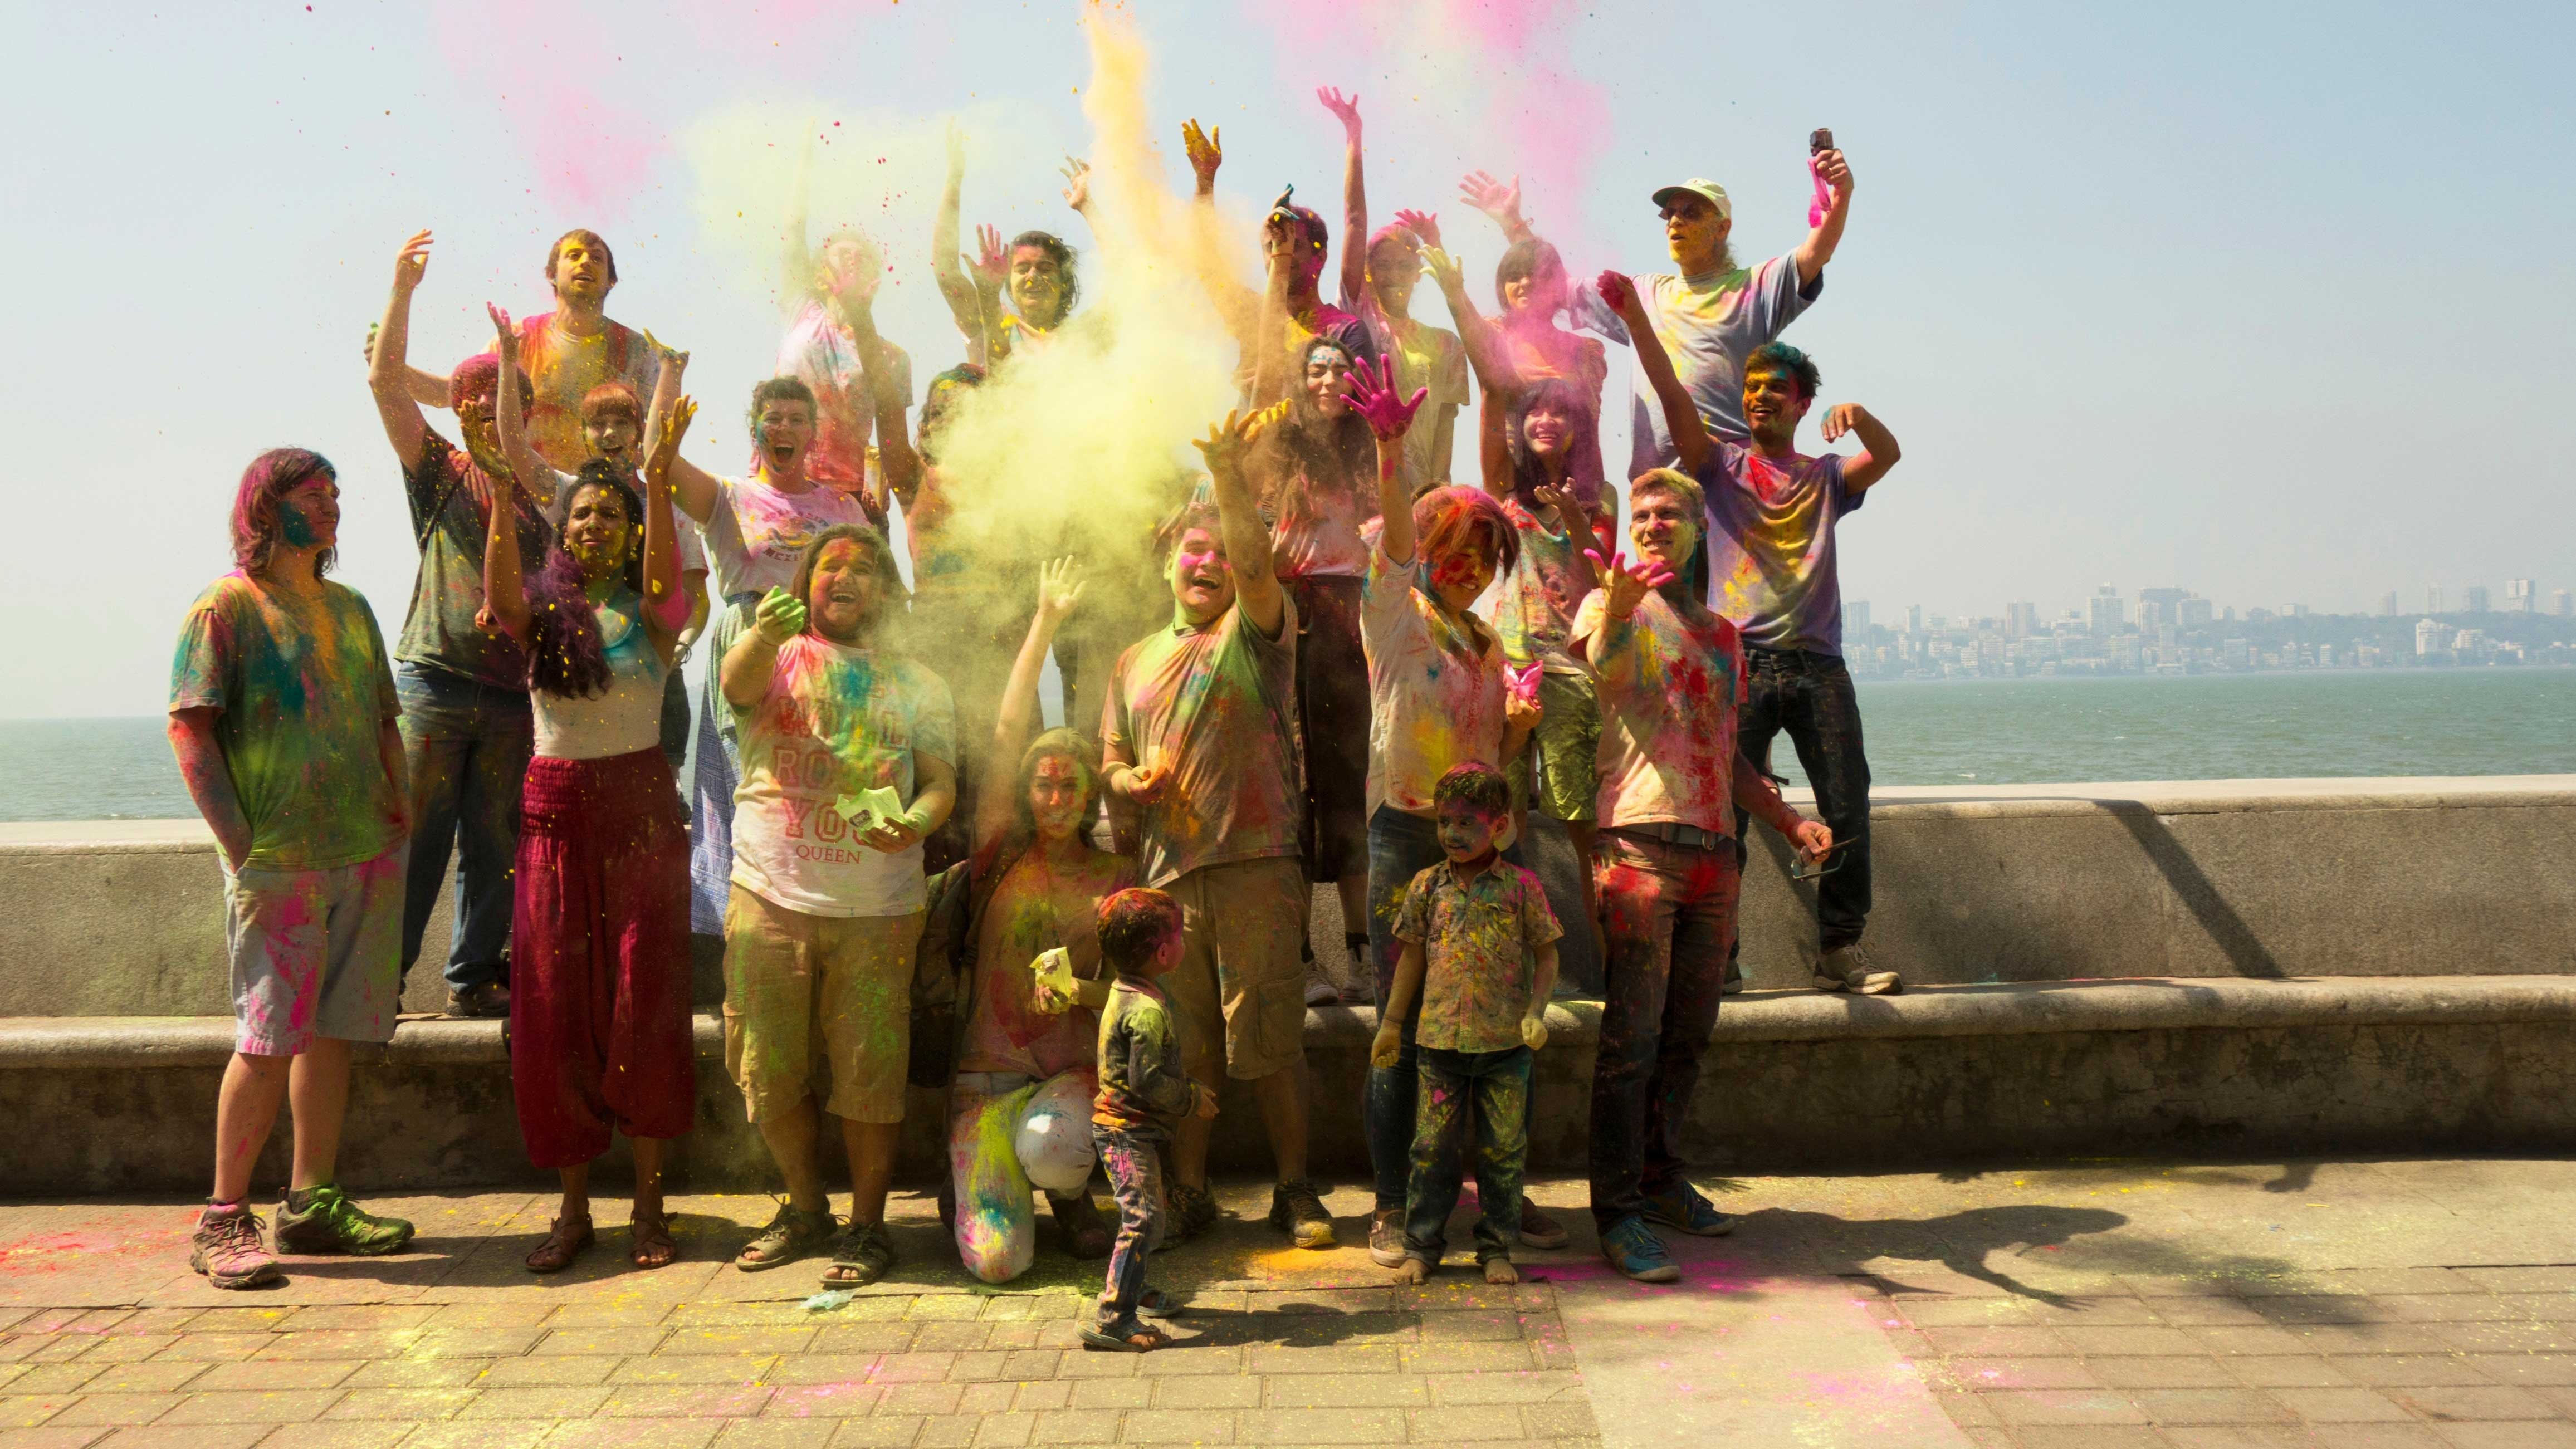 Students celebrating Holi, the festival of colors in Mumbai, India.